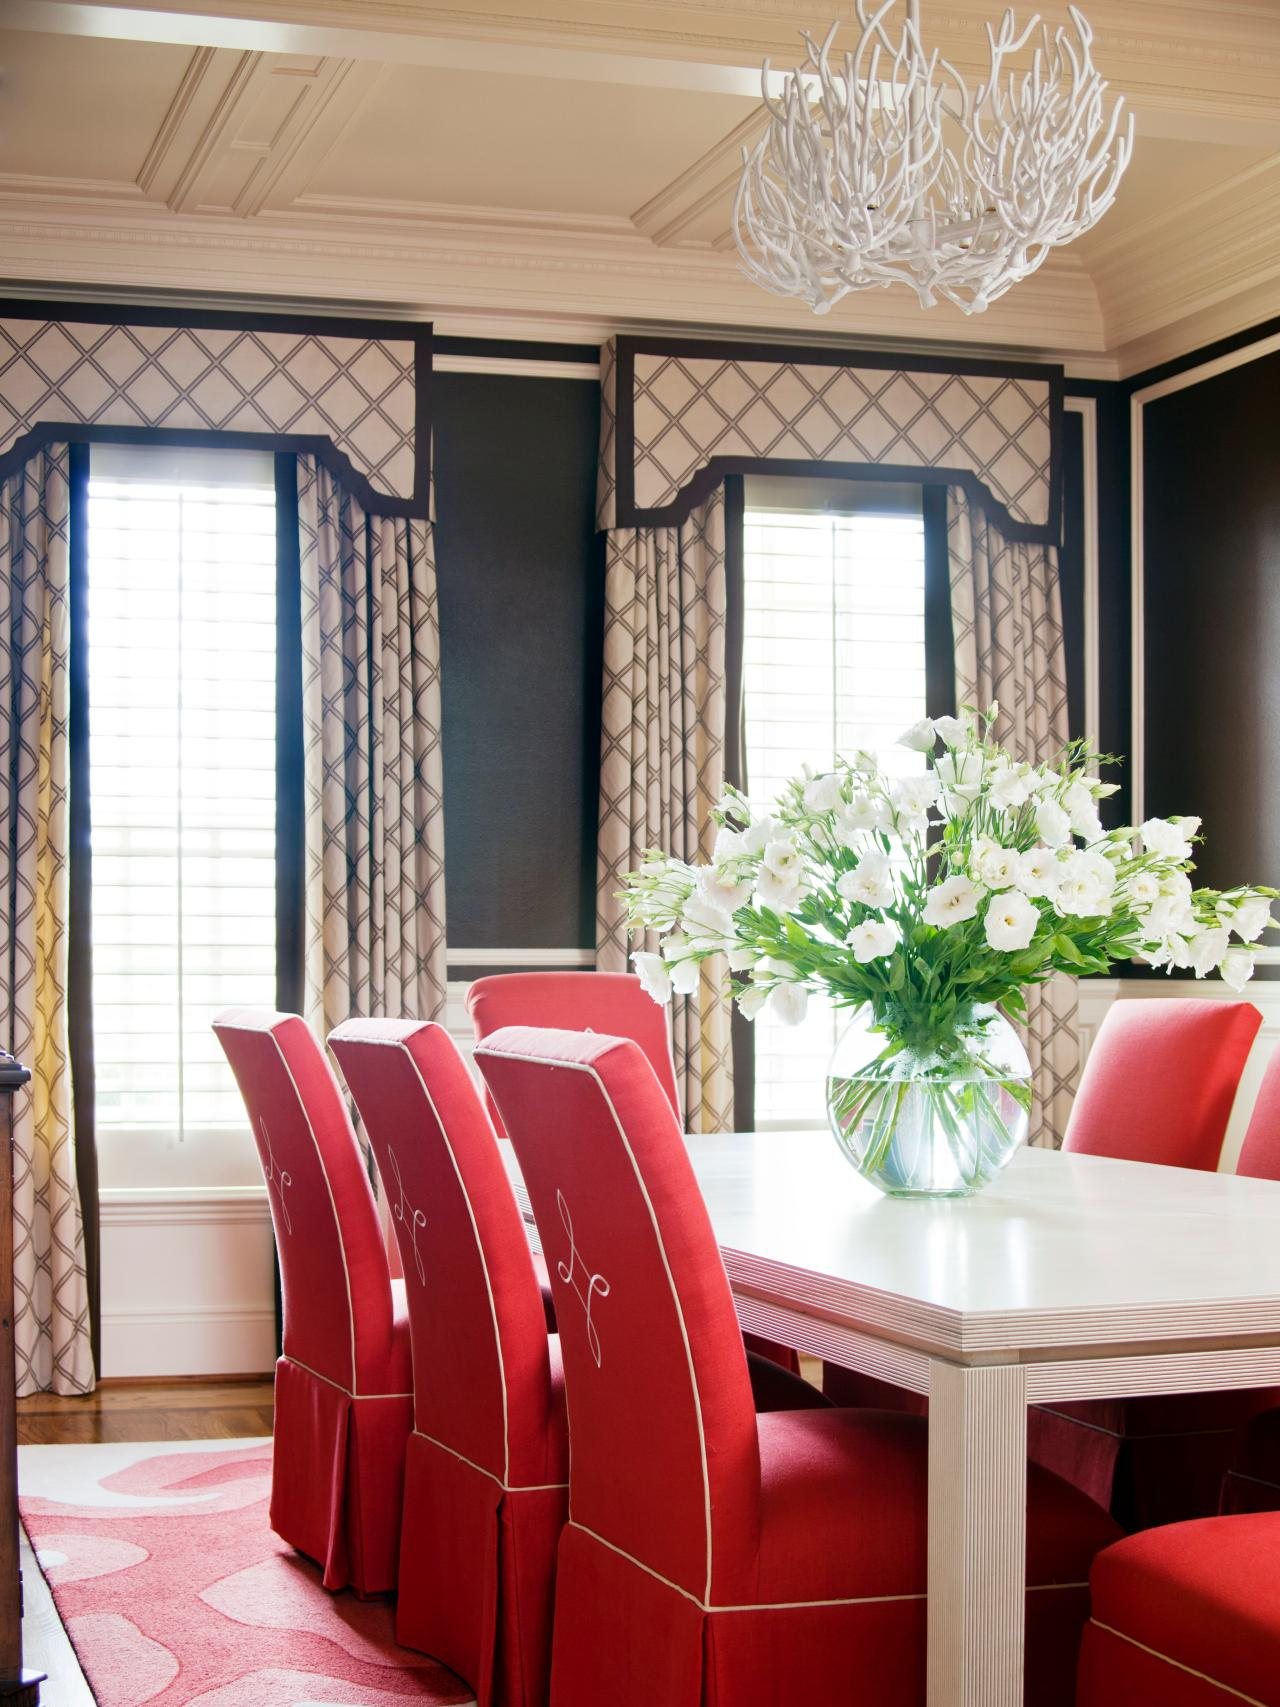 The best window treatments for your style the shade company for Traditional dining room decorating photos